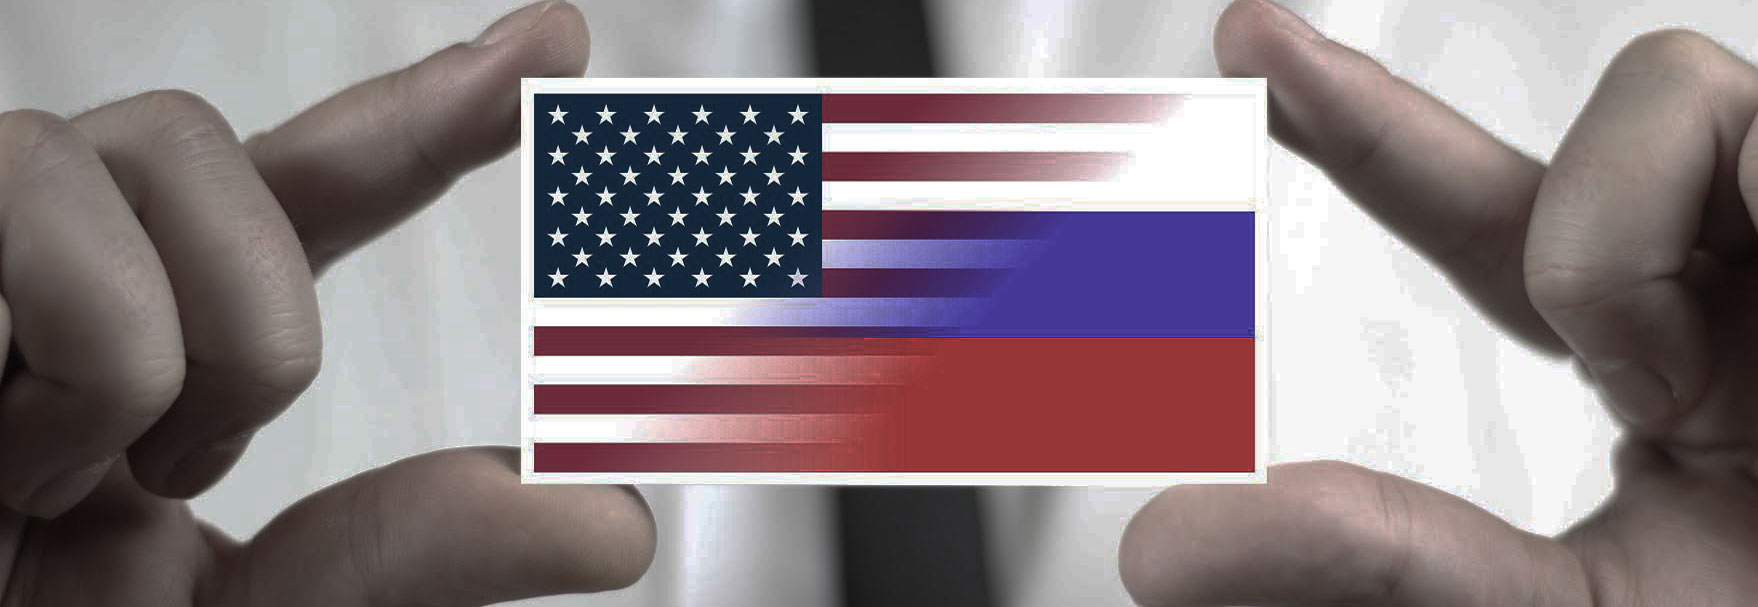 an image with Russian and American flags